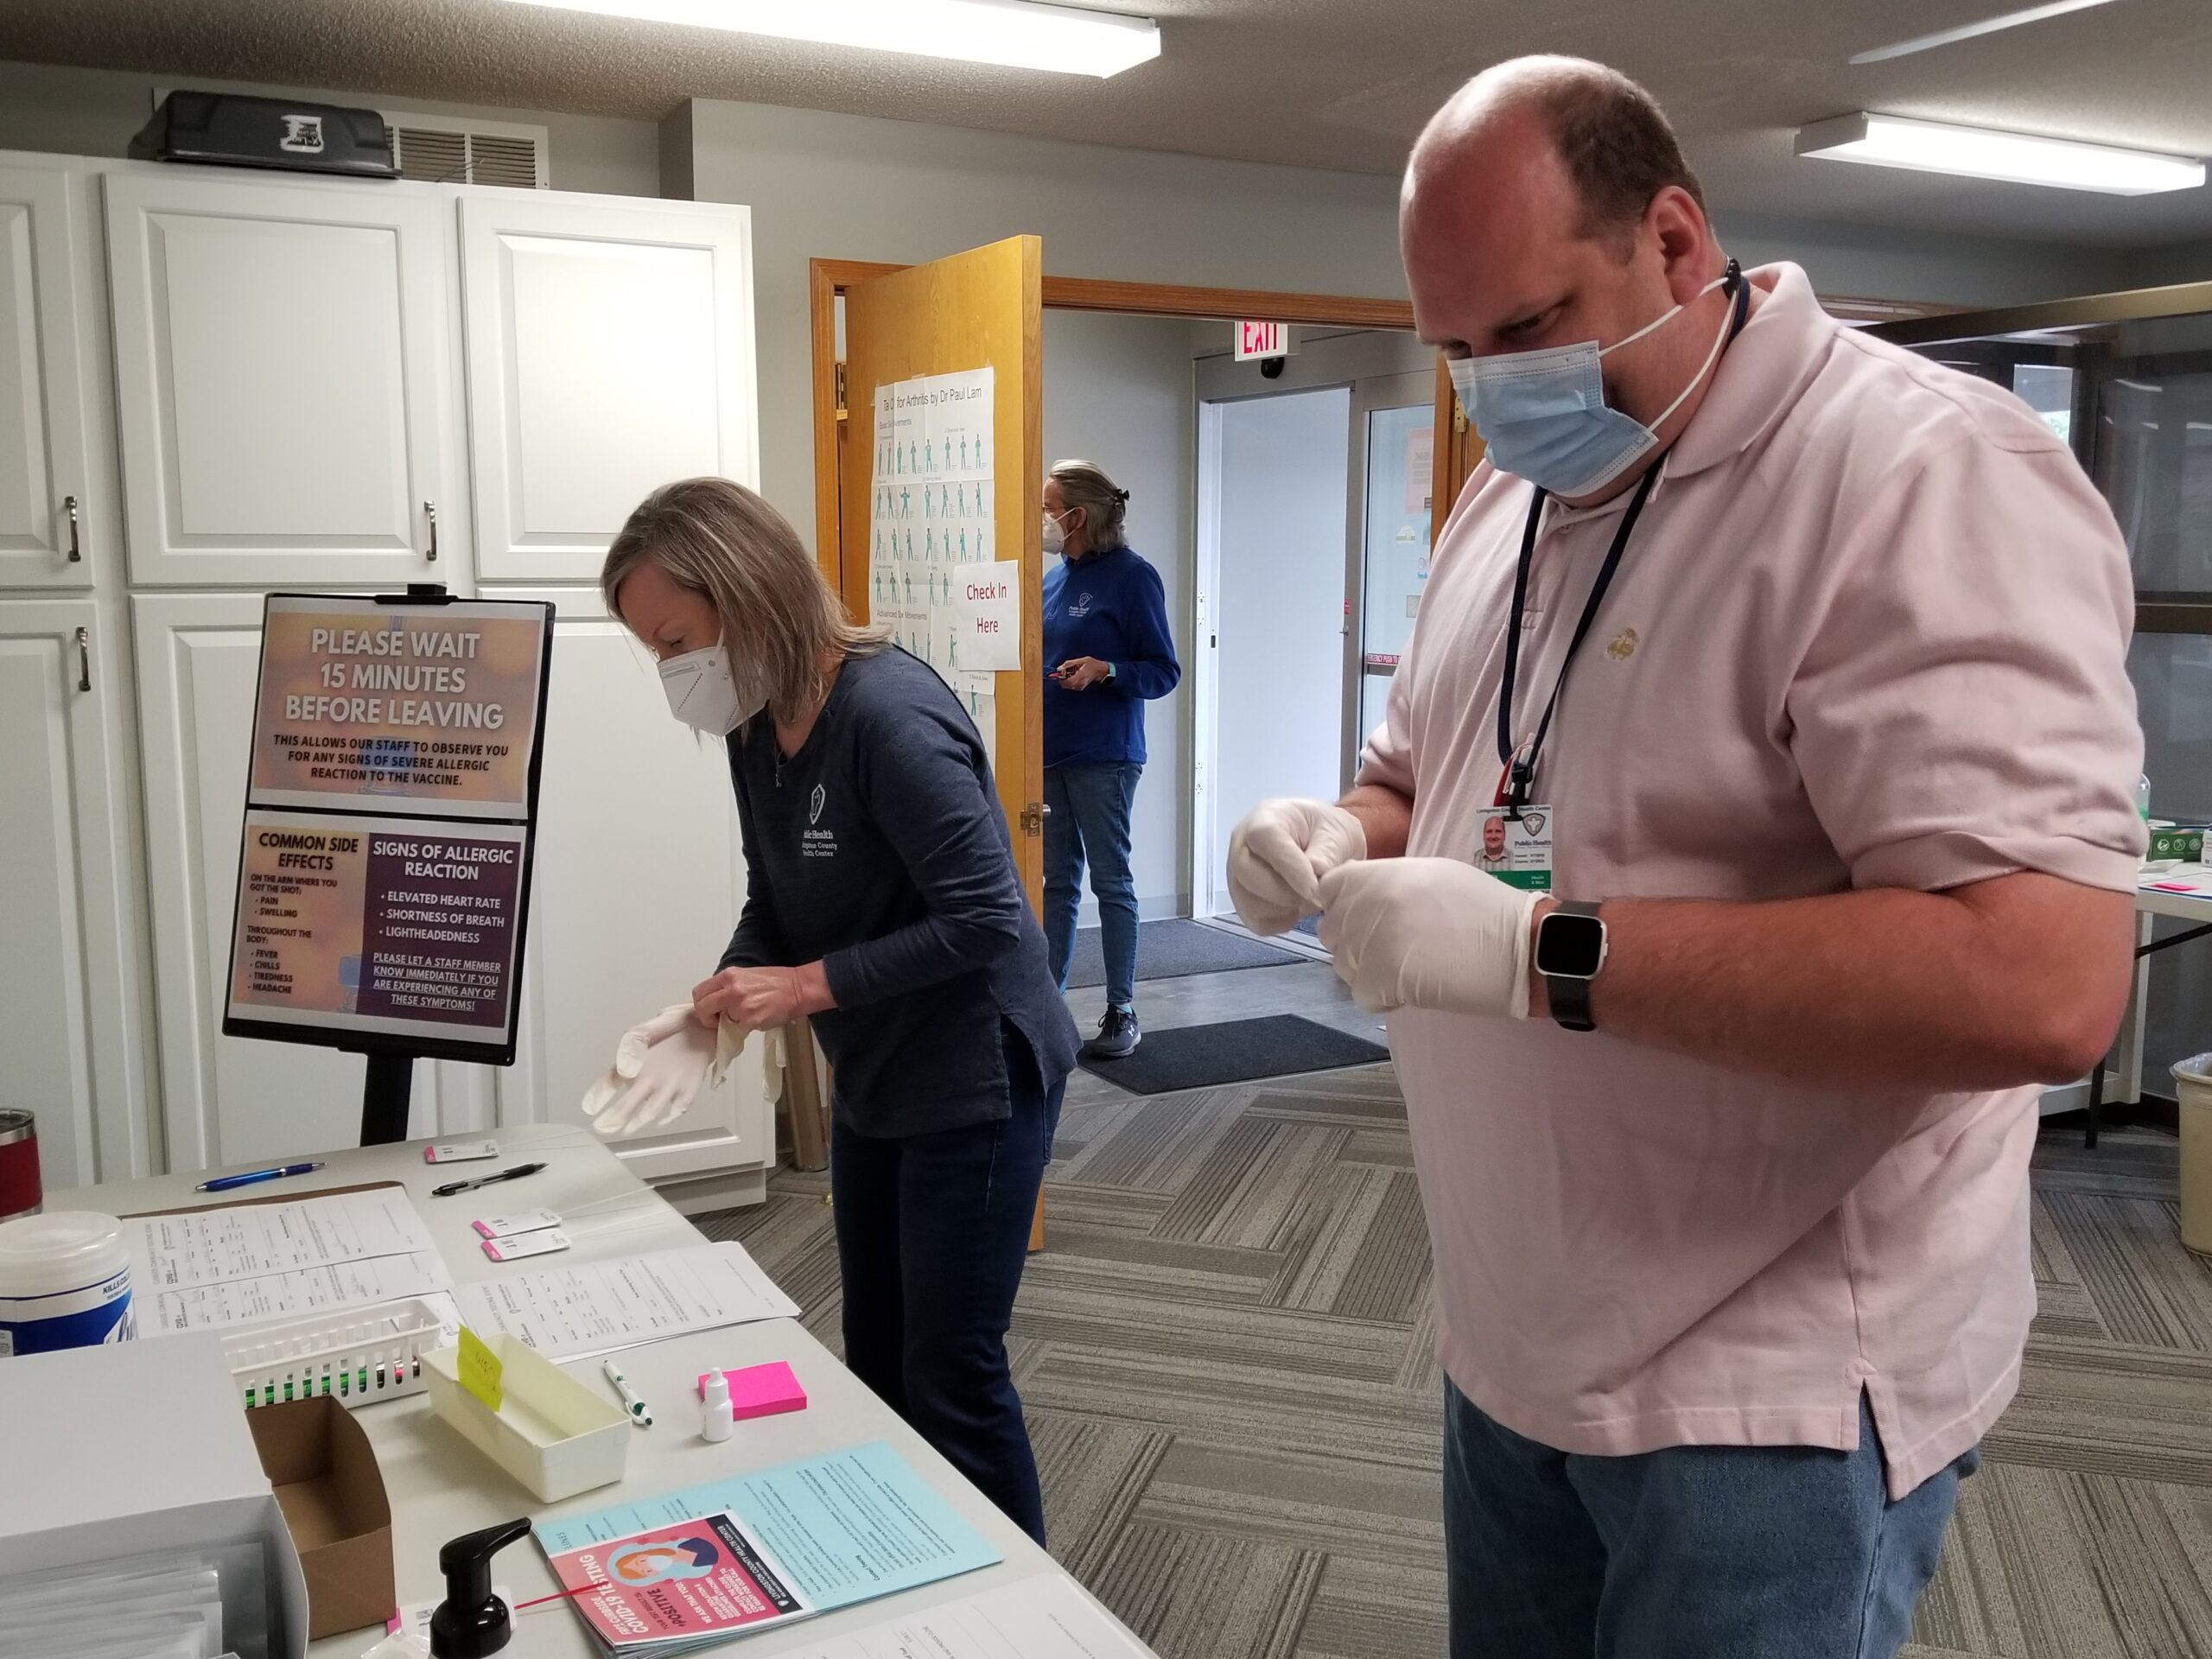 Nurse Anita Perry, left, and Curtis Lanning, emergency coordinator, process samples Friday during a drive-up COVID-19 testing event at the Livingston County Health Center in Chillicothe. (Rudi Keller/Missouri Independent)